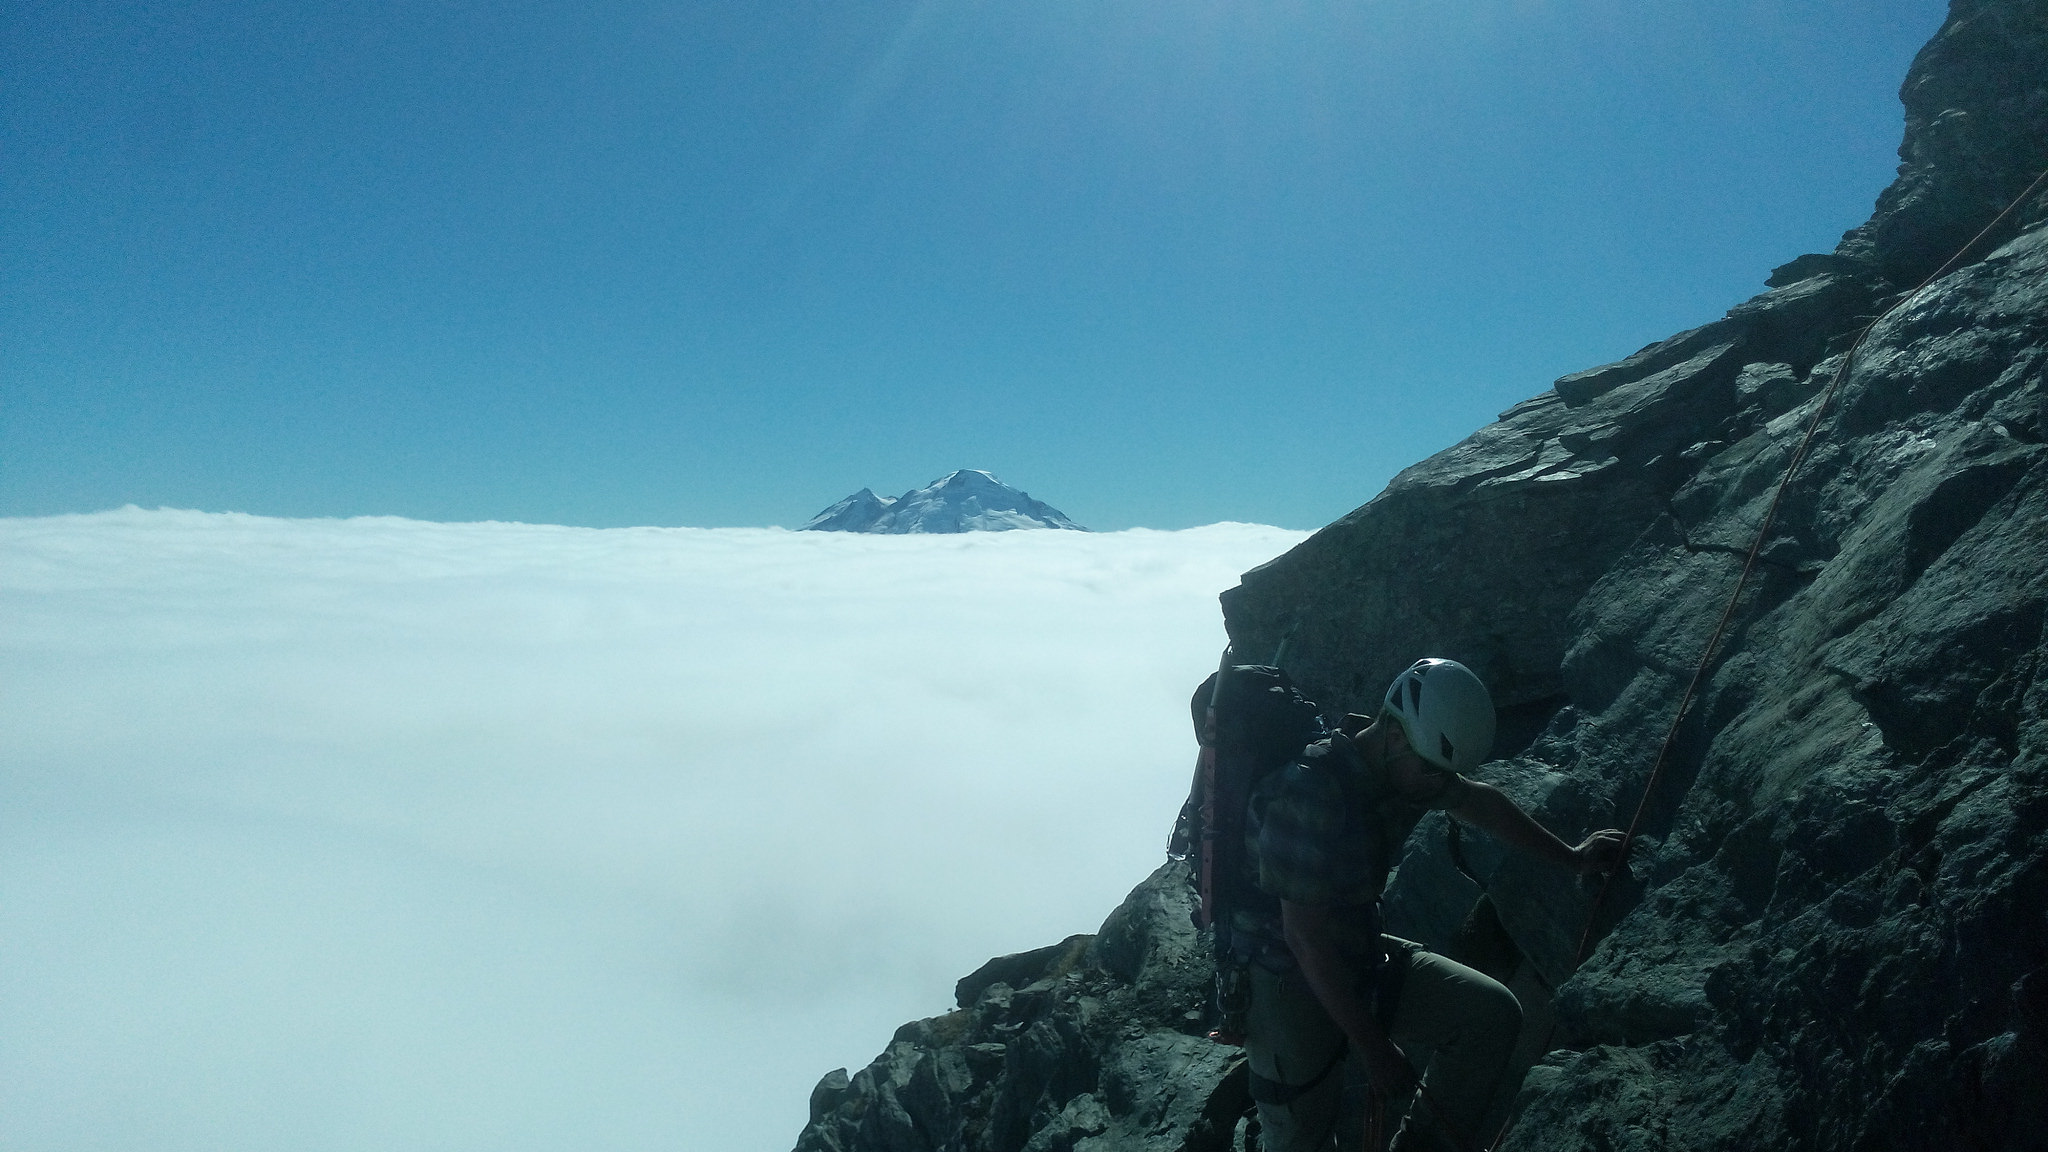 Climbing on some rock with Mt Baker in the background